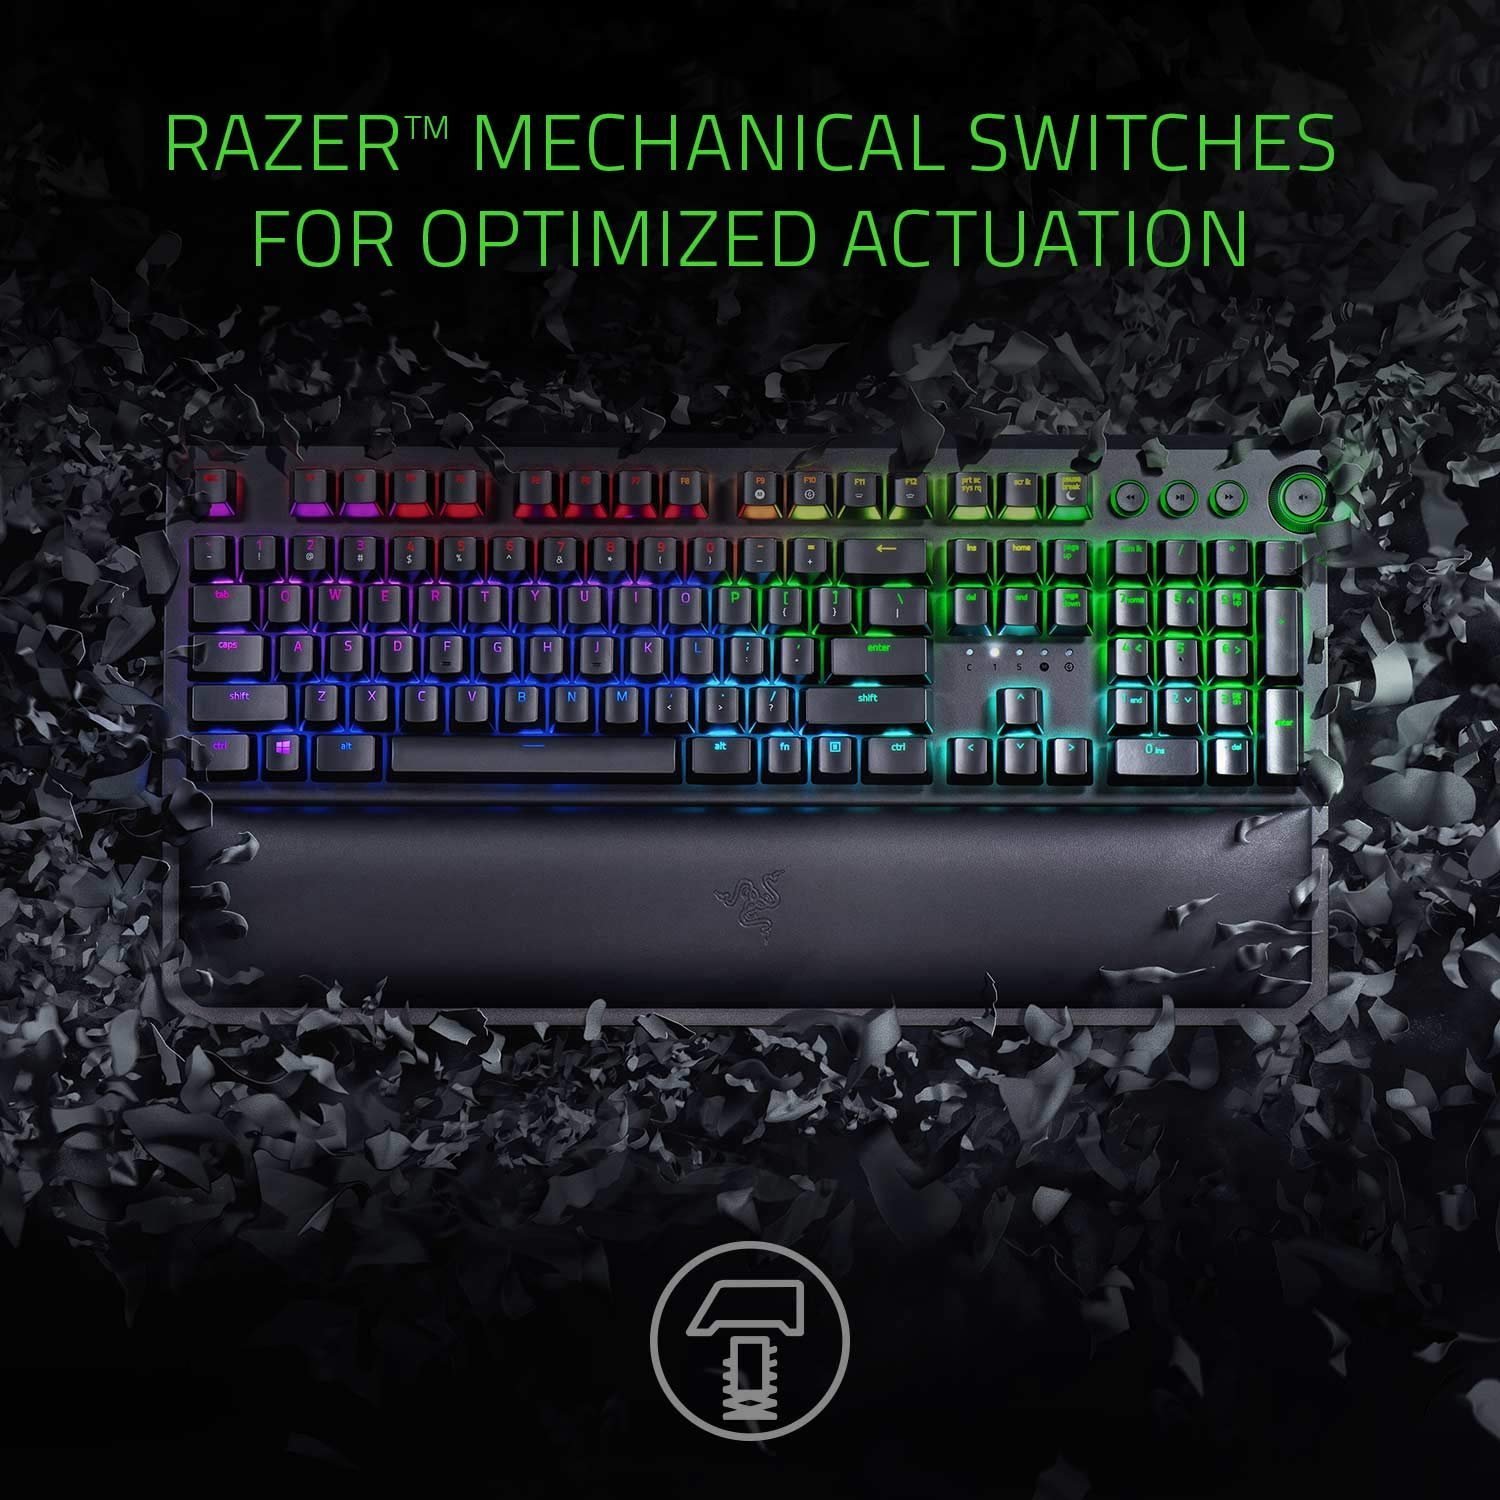 Razer BlackWidow Elite Mechanical Gaming Keyboard Green Mechanical Switches – Tactile Clicky – Chroma RGB Lighting – Magnetic Wrist Rest – Dedicated Media Keys Dial – USB Passthrough